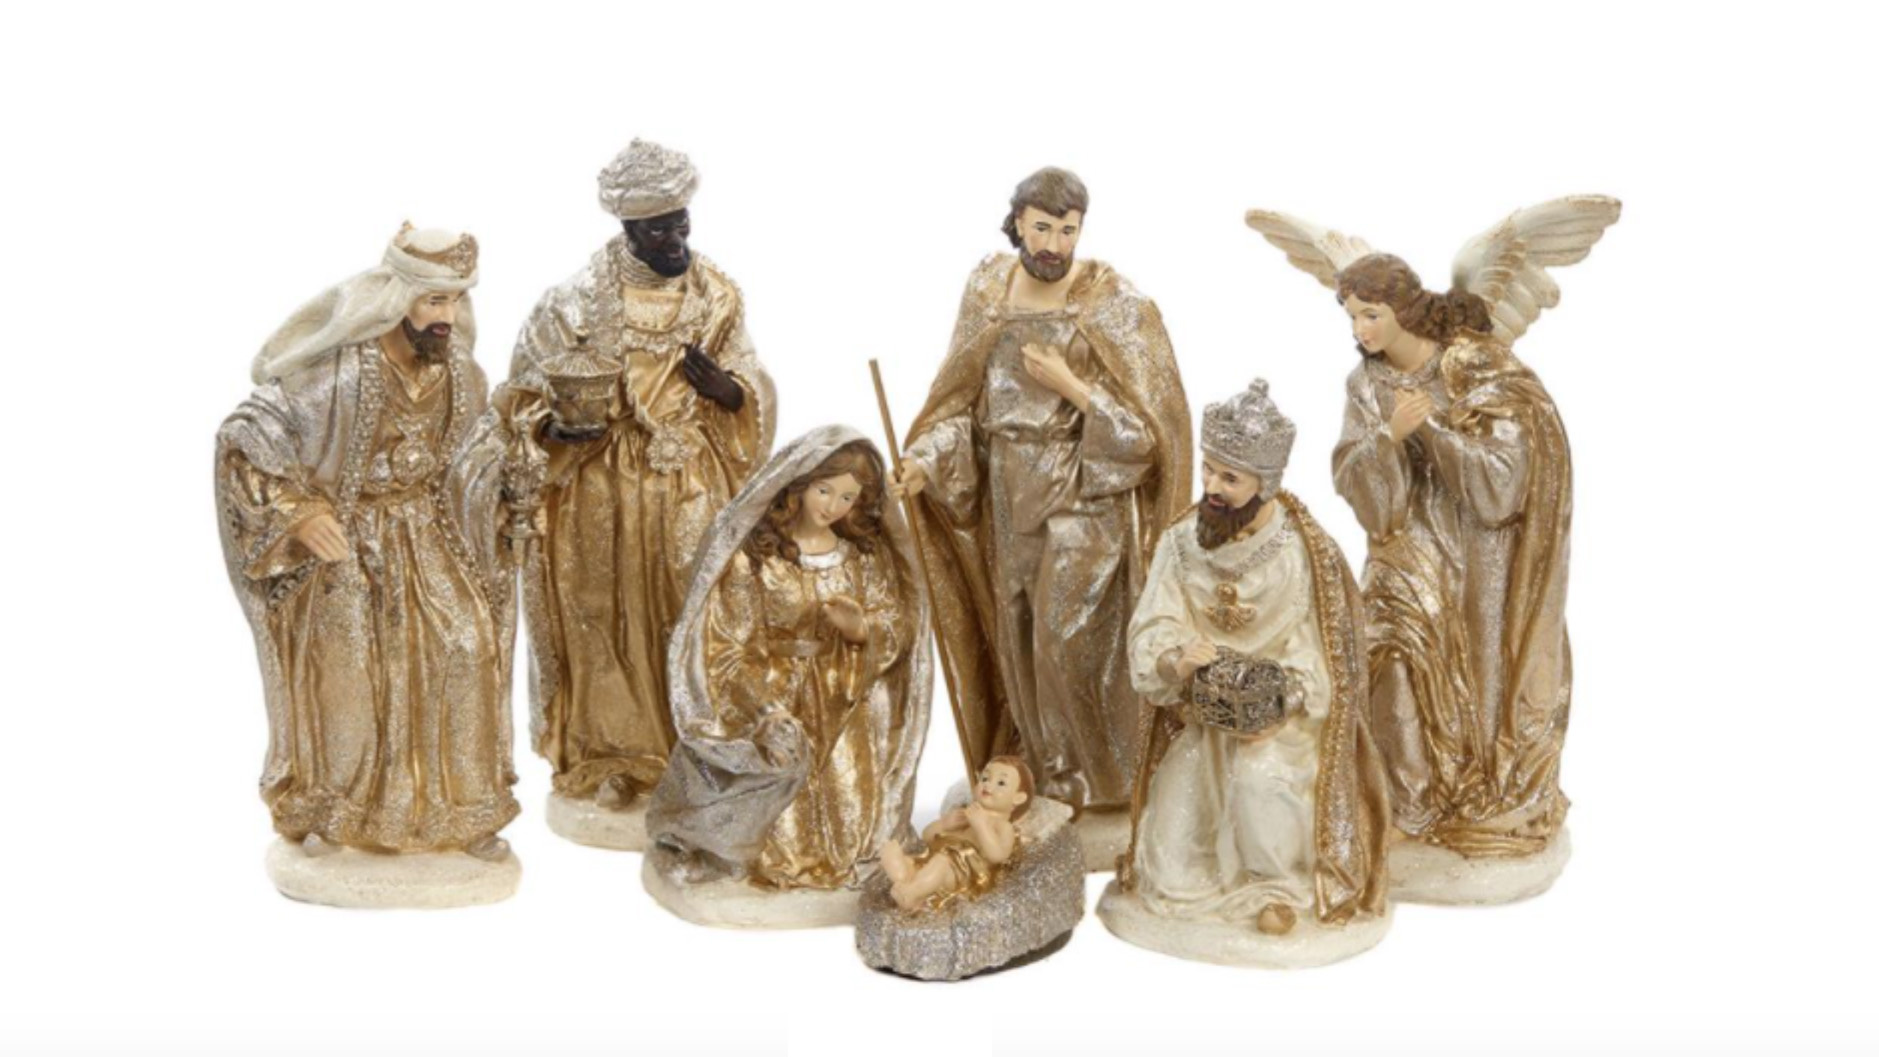 Goodwill Holy family figures - H30 cm